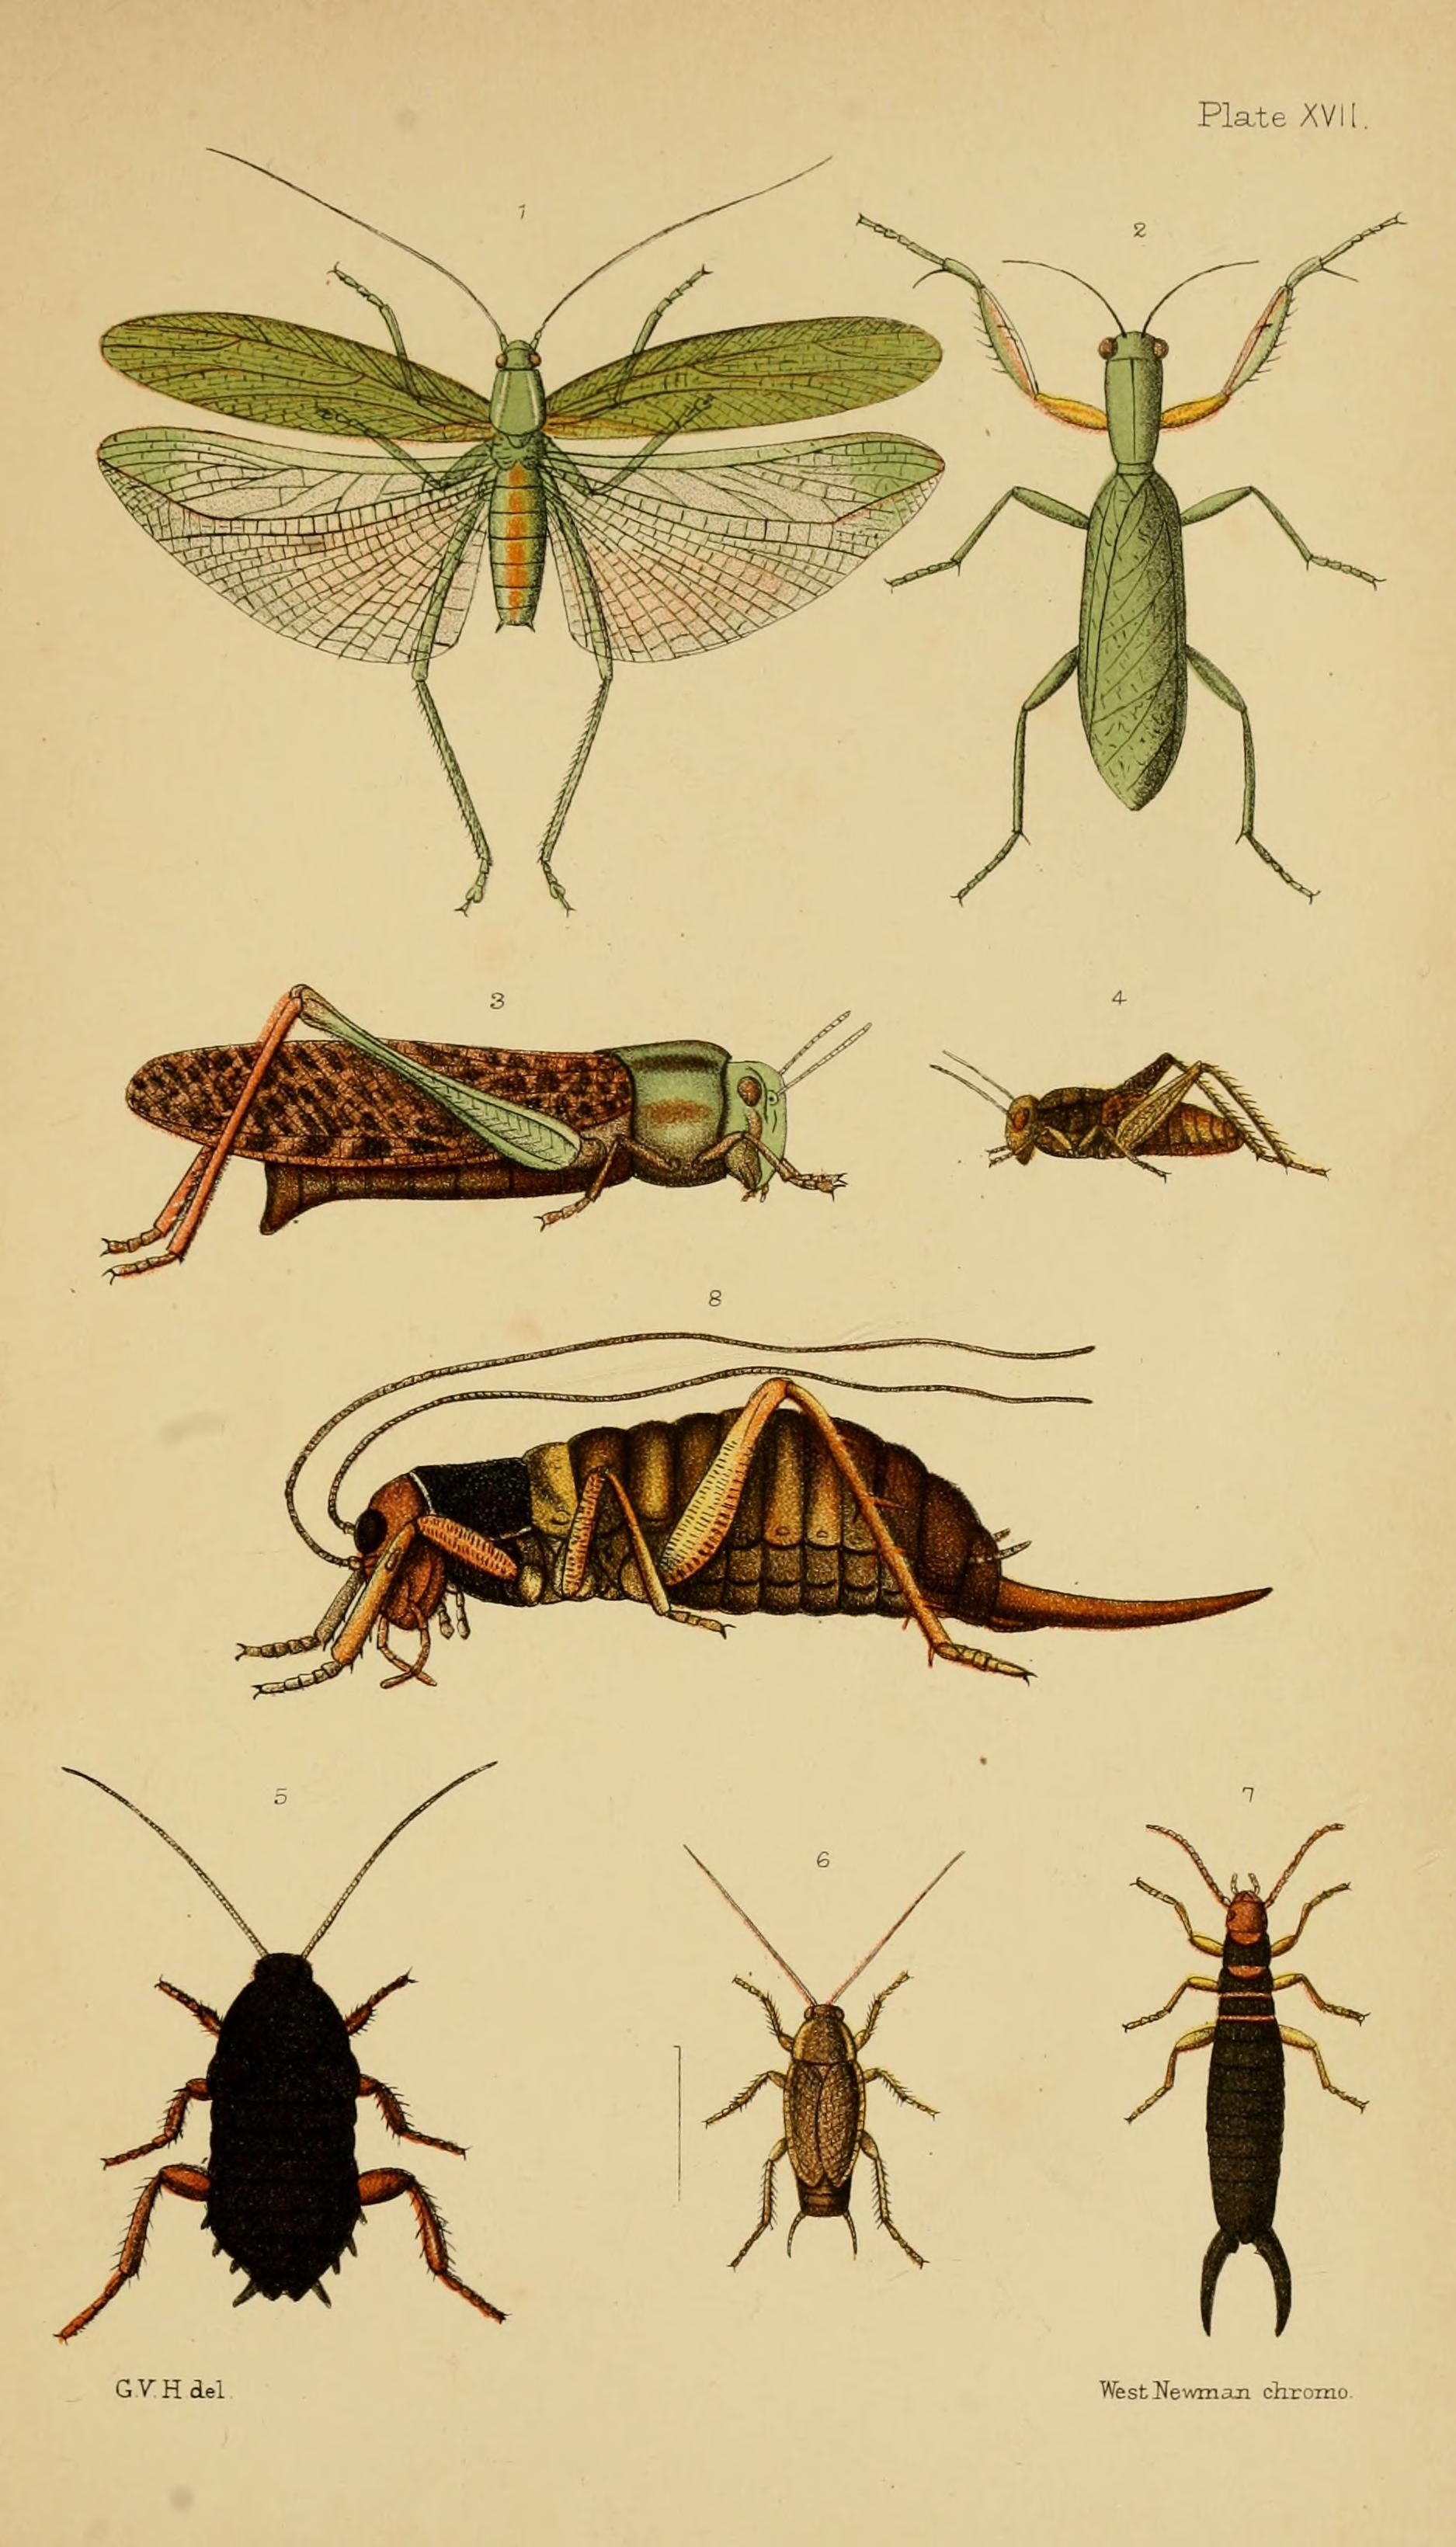 An analysis of the anatomy and classes of insects in entomology ...